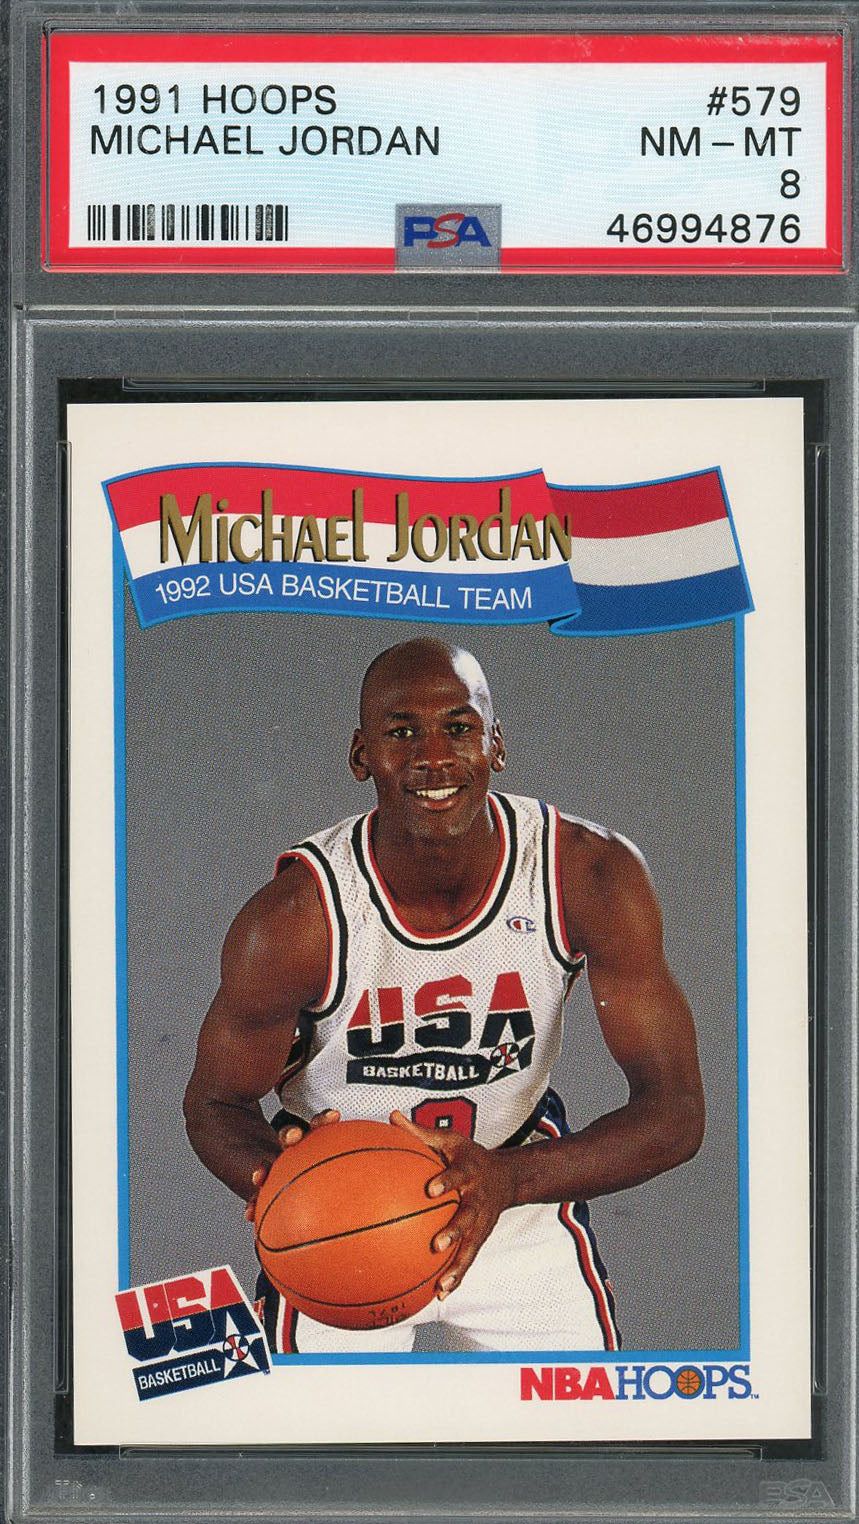 Michael Jordan Team USA Dream Team 1991 Hoops Basketball Card #579 Graded PSA 8-Powers Sports Memorabilia